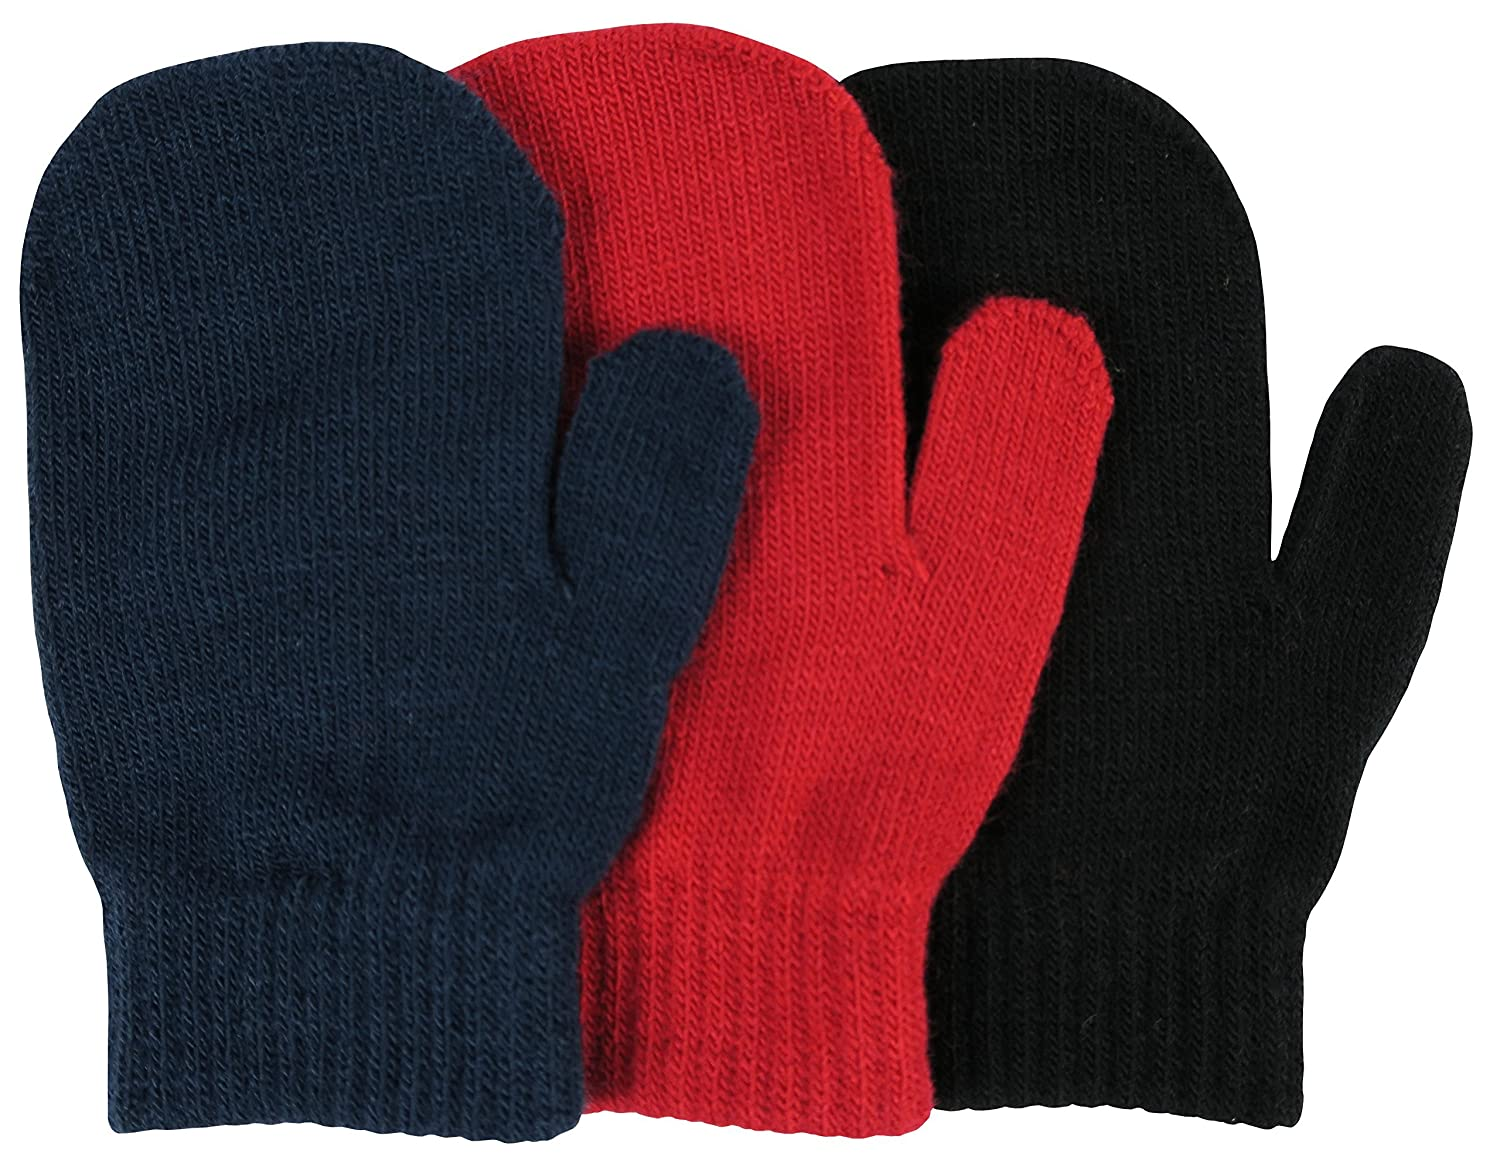 N'Ice Caps Little Boys and Infants Magic Stretch Mittens 3 Pairs Assortment N' Ice Caps 211-C-I